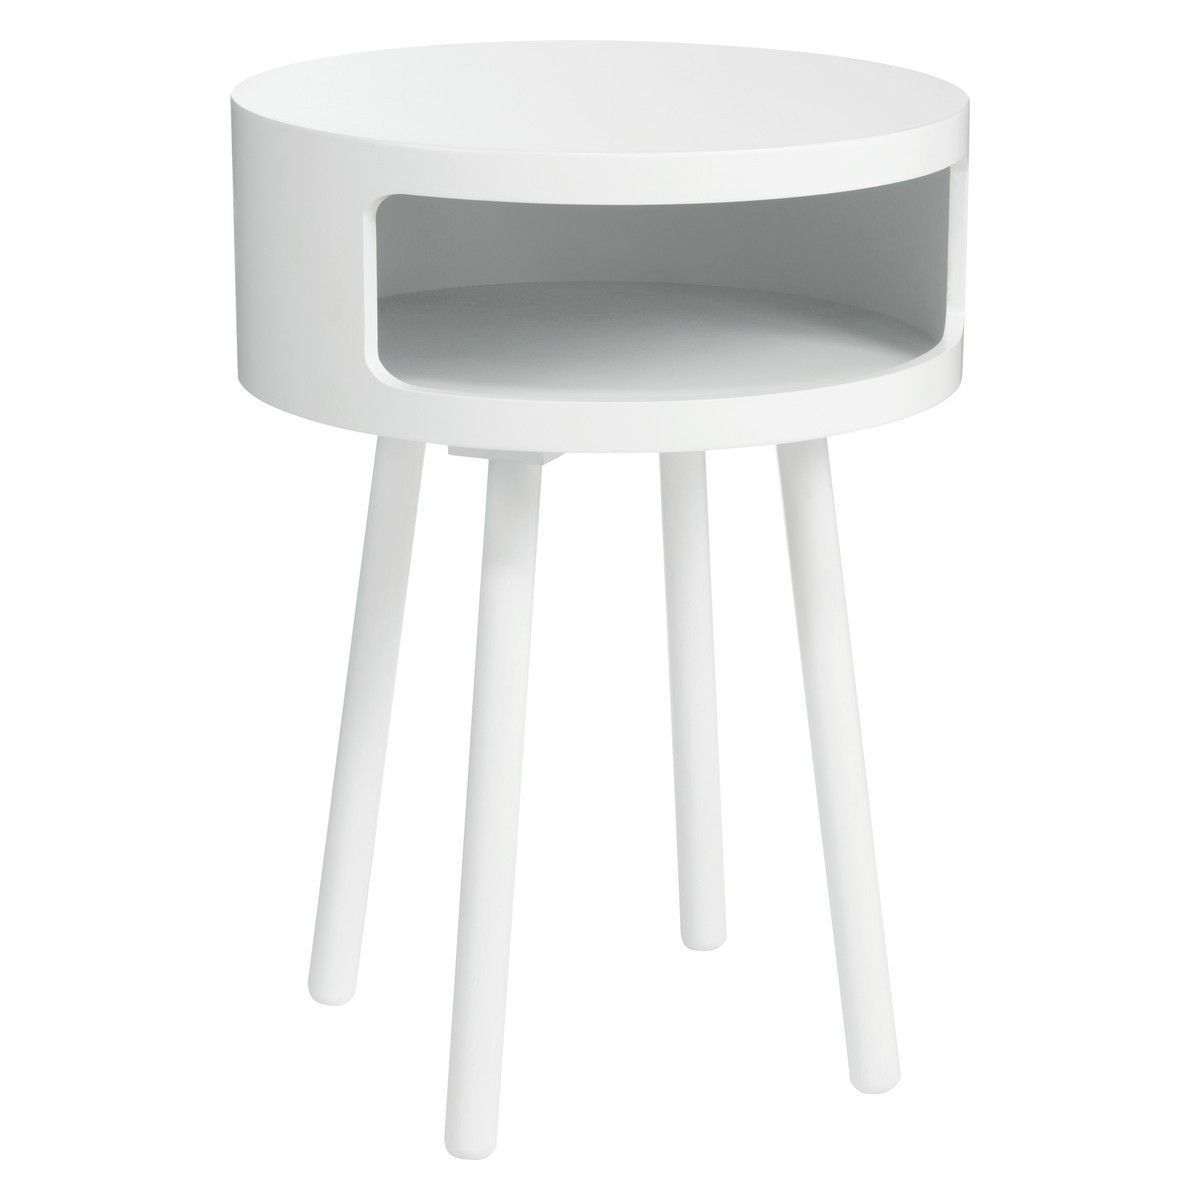 White Side Tables bumble white side table | white side tables, bedrooms and room ideas